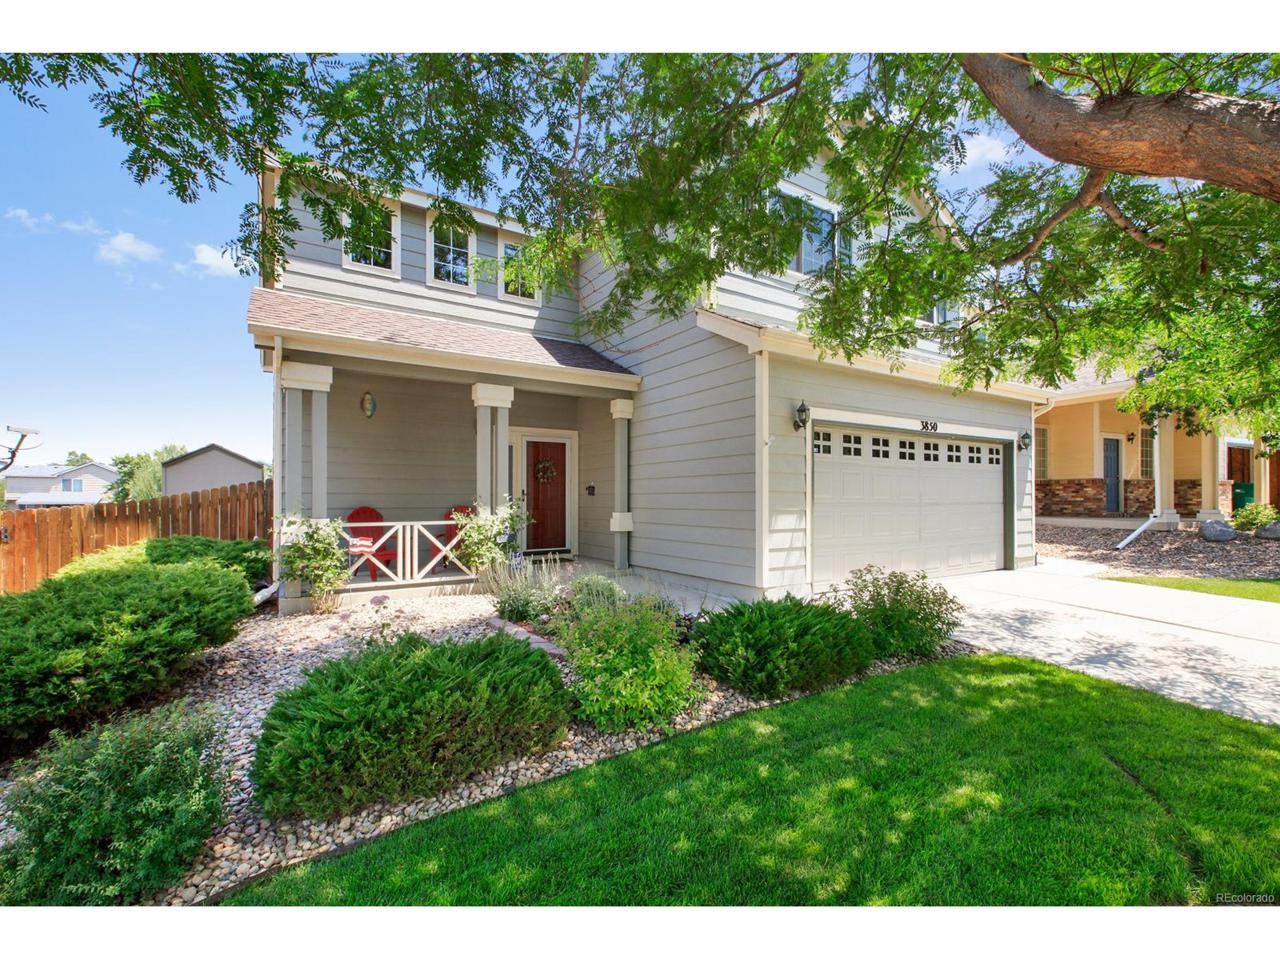 3850 S Kirk Way, Aurora, CO 80013 (MLS #4298743) :: 8z Real Estate